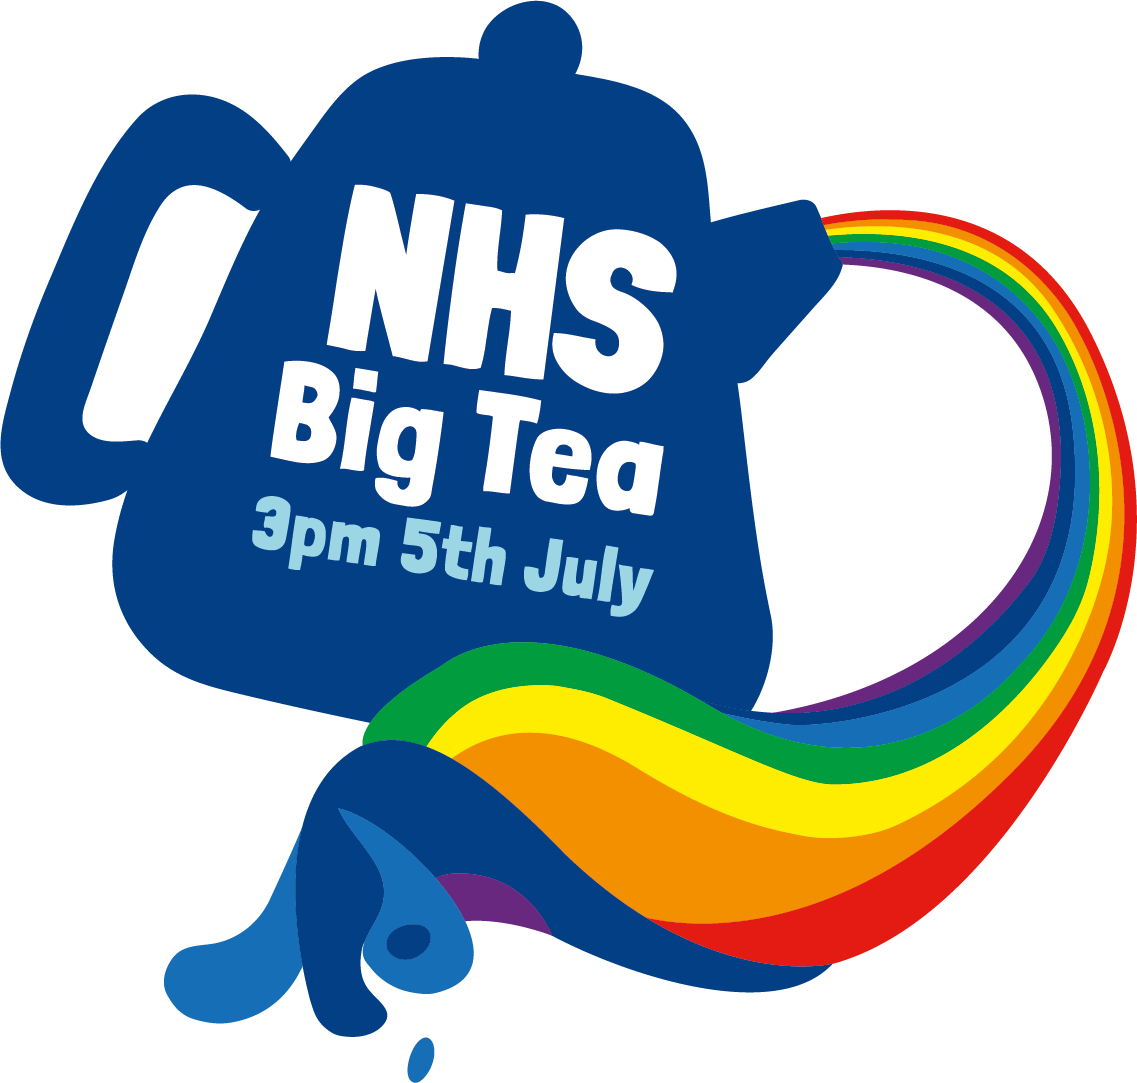 Let's raise a cuppa to our NHS